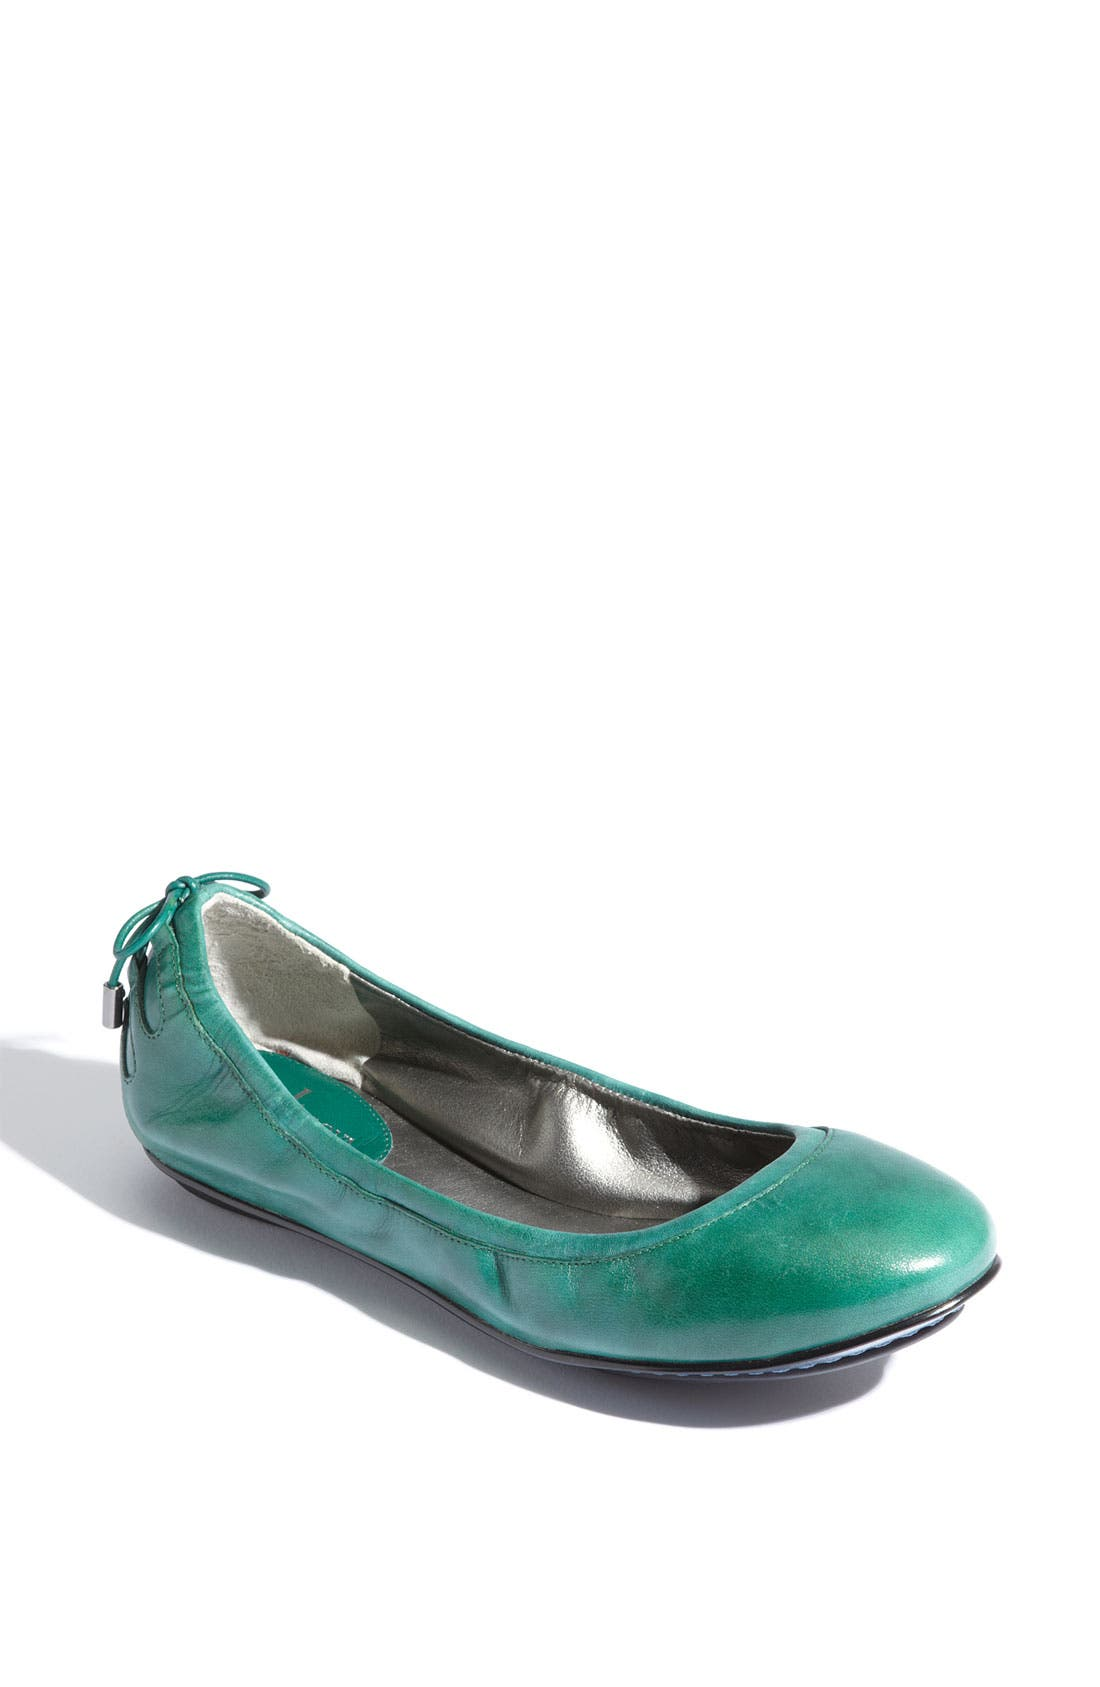 ,                             Maria Sharapova by Cole Haan 'Air Bacara' Flat,                             Main thumbnail 52, color,                             300